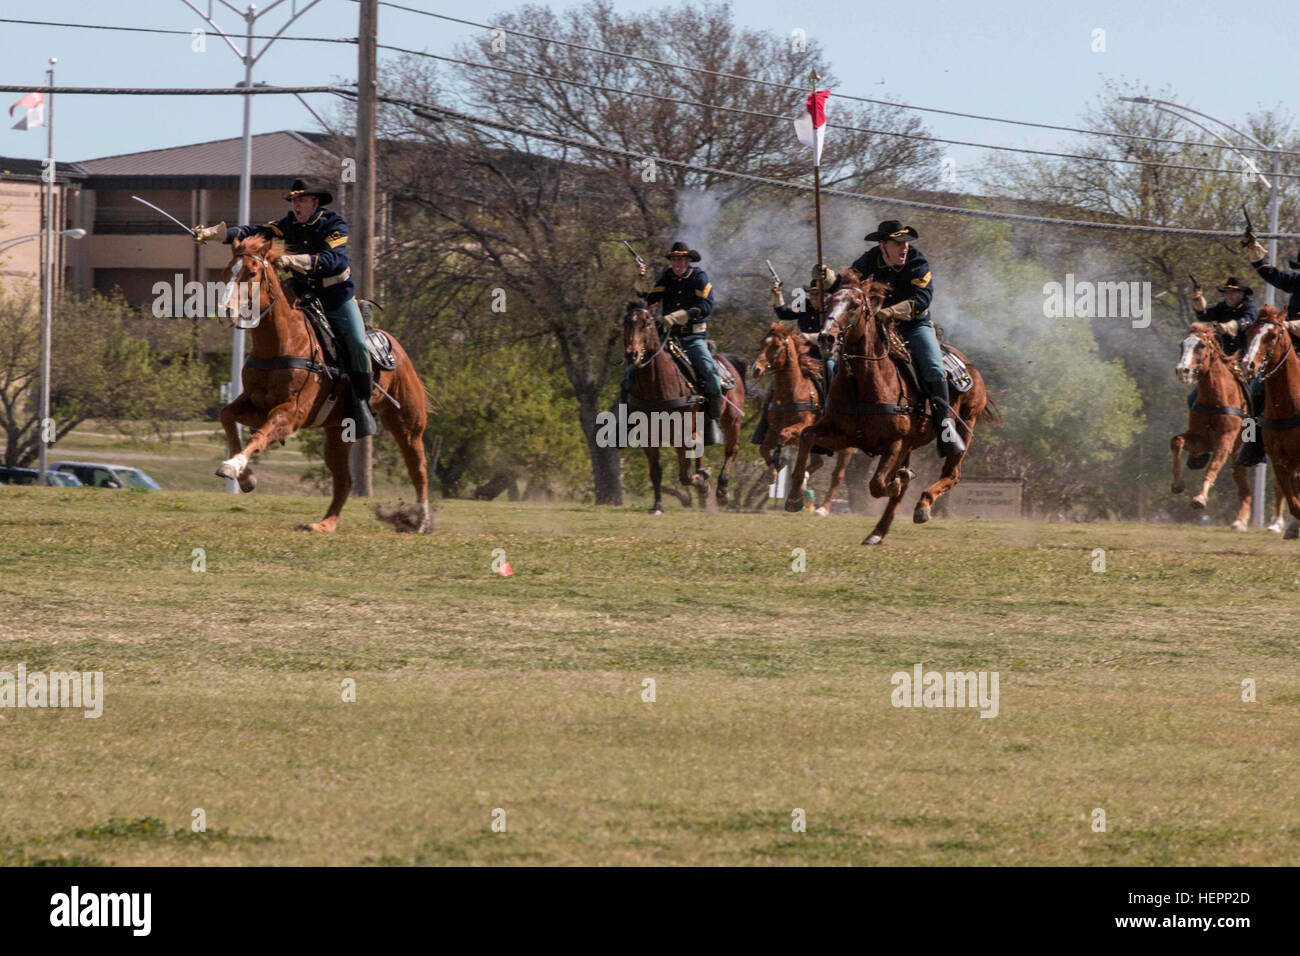 the 1st cavalry division horse cavalry detachment conducts a cavalry